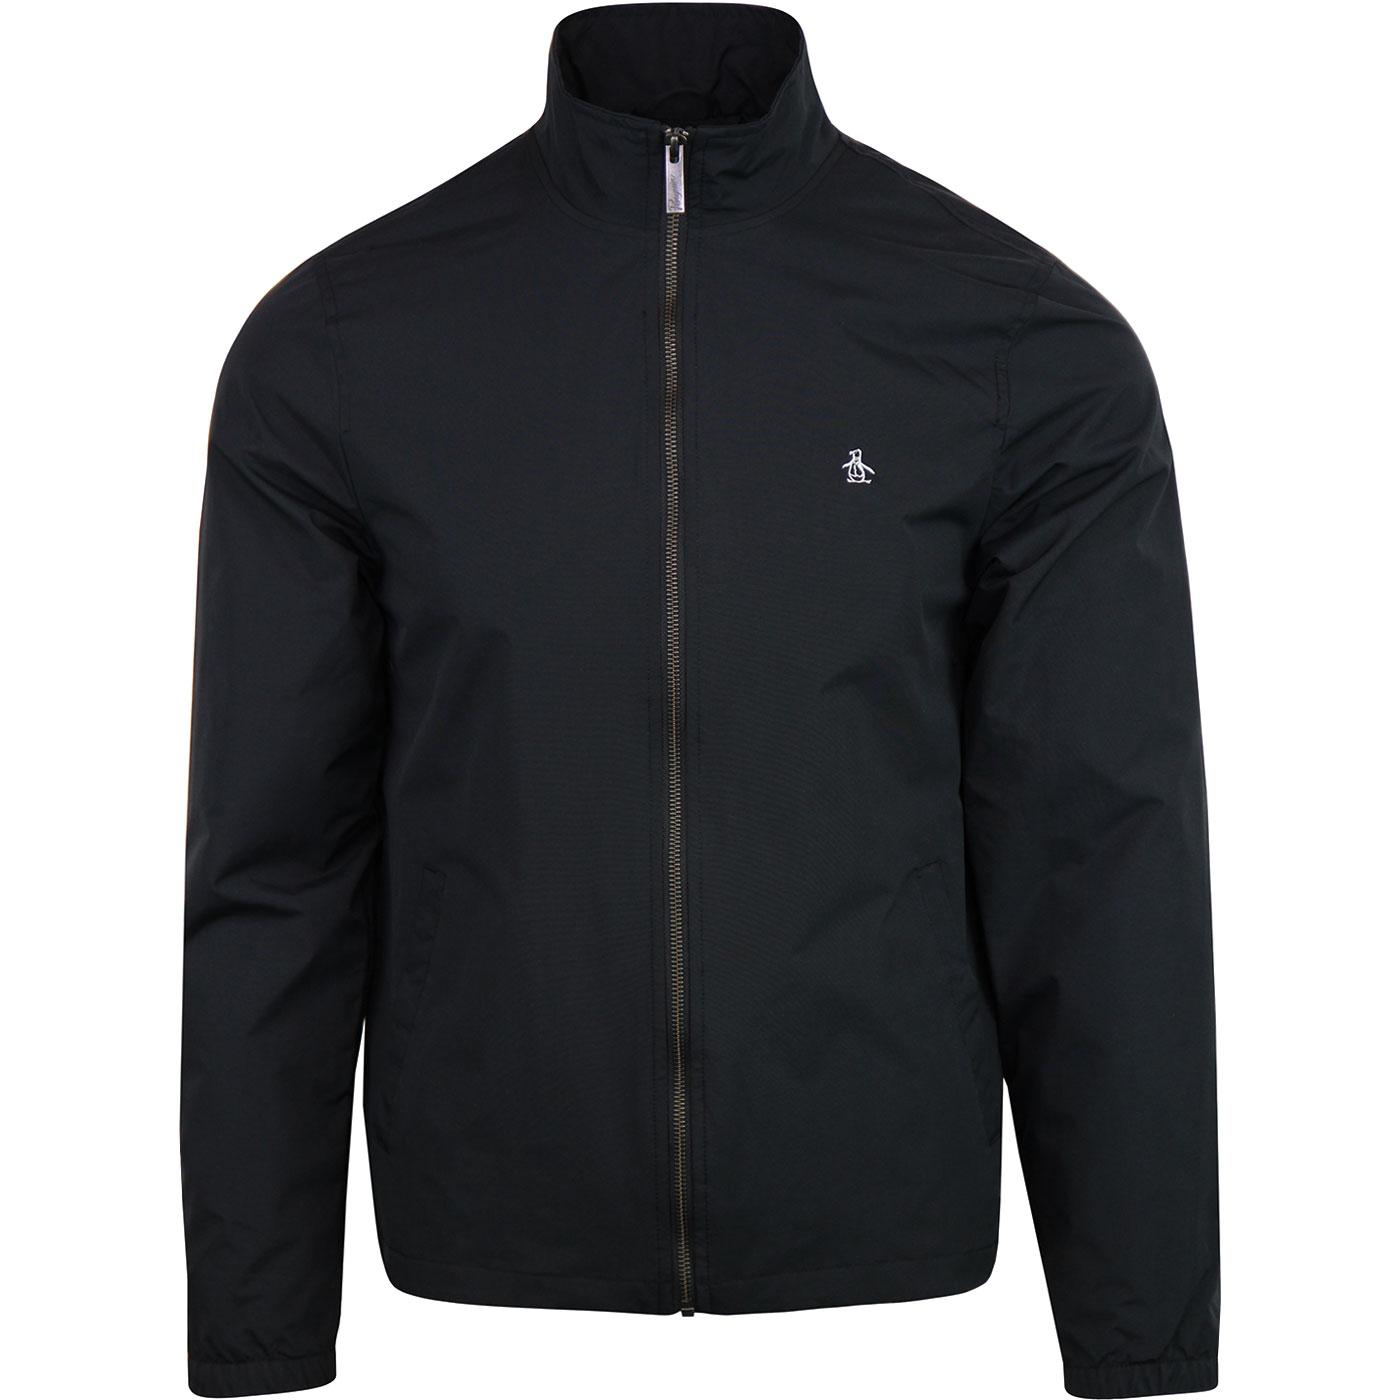 ORIGINAL PENGUIN Men's Retro Windcheater Jacket